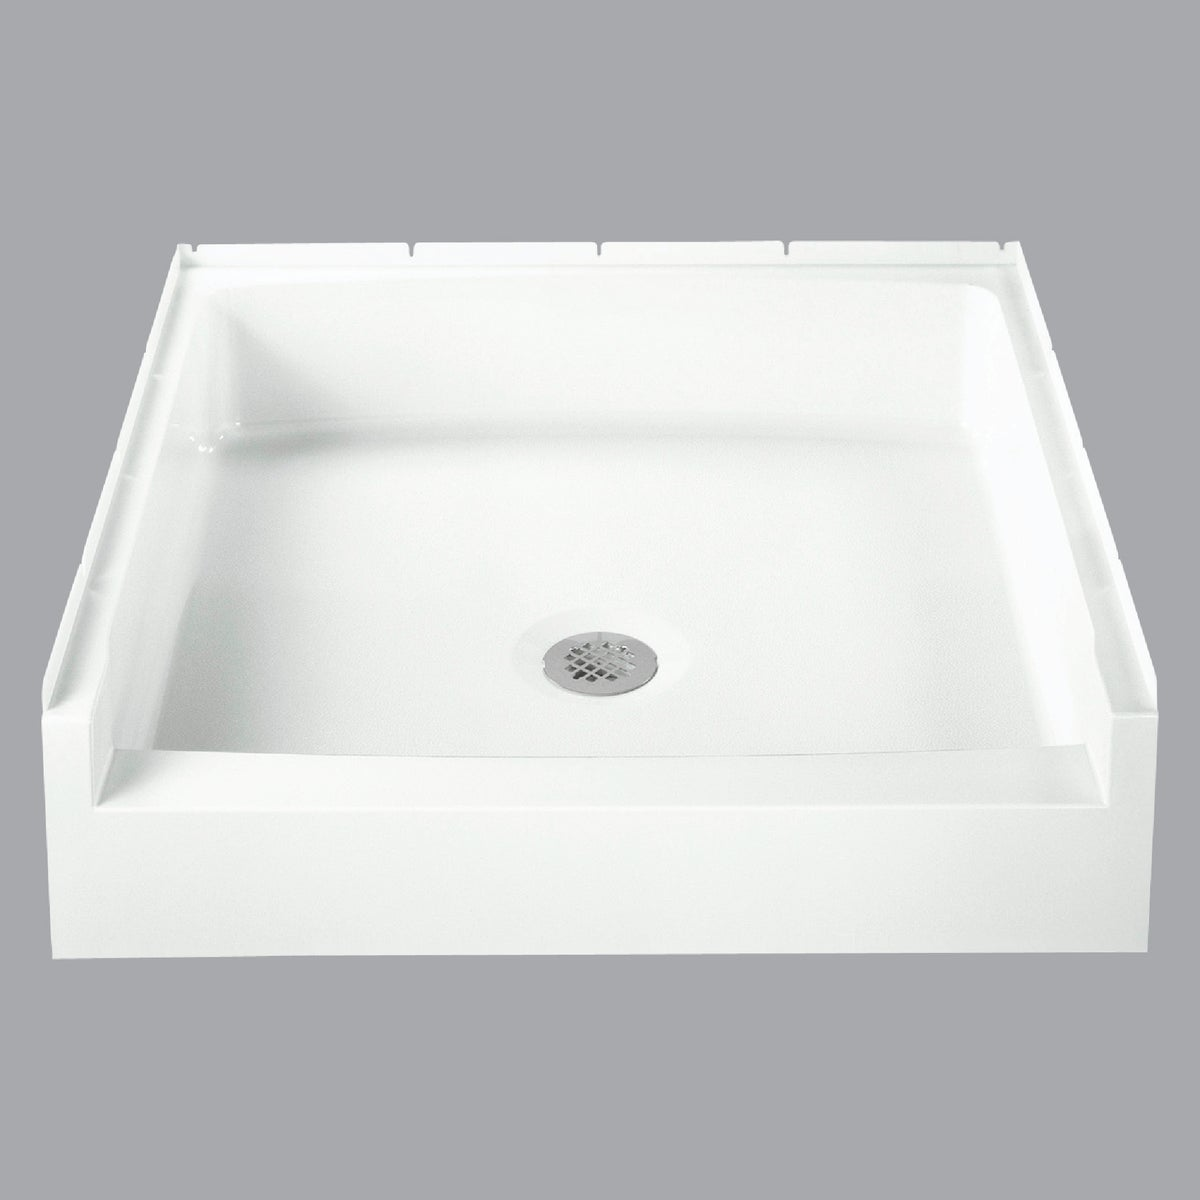 "32"" WHITE SHOWER BASE - 62011100-0 by Sterling Pbg/vikrell"